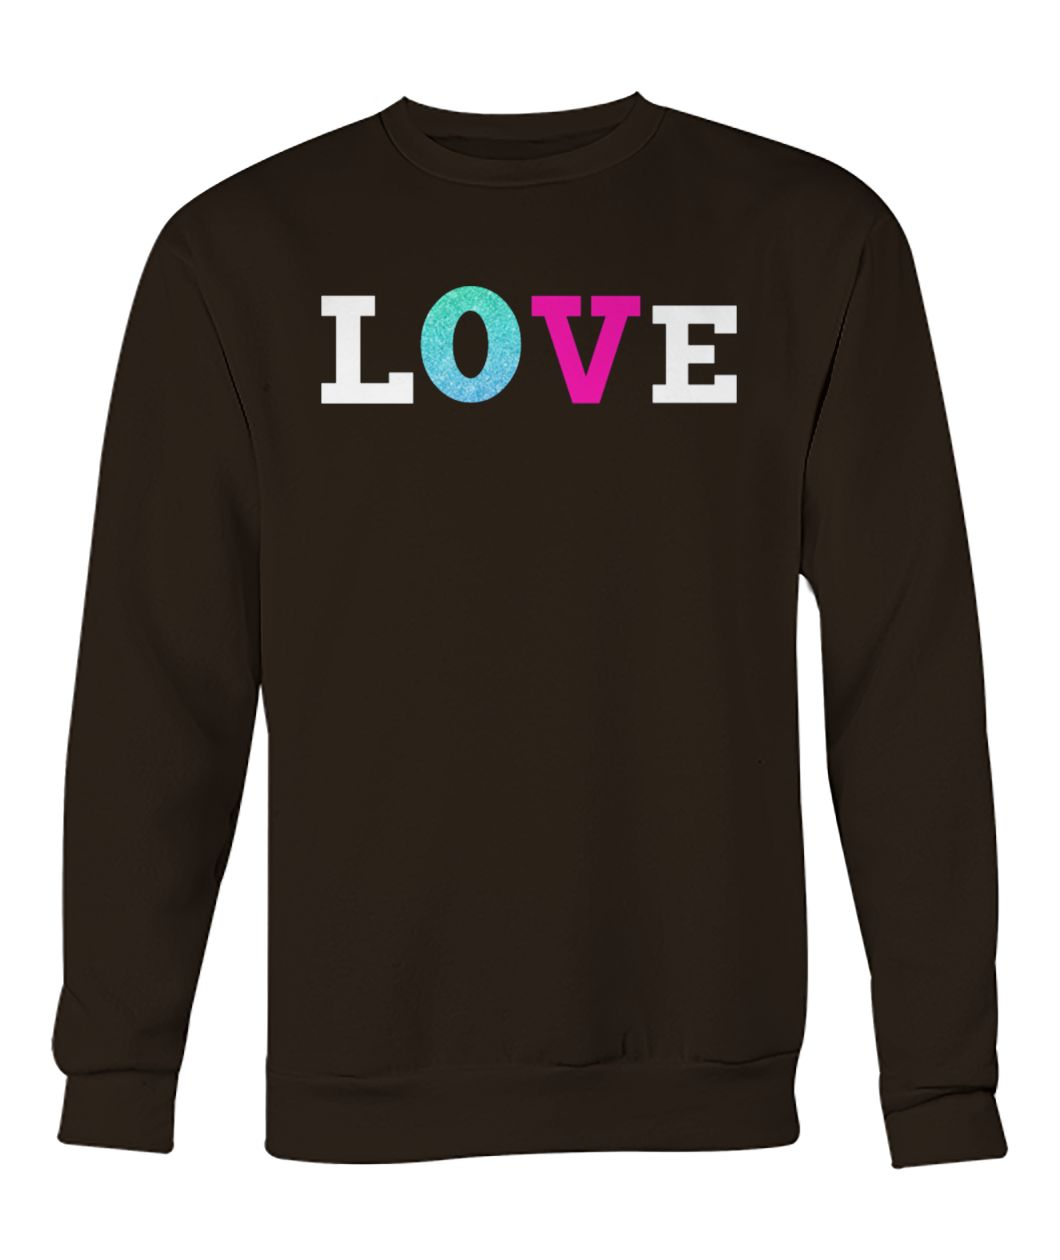 Savannah guthrie love crew neck sweatshirt